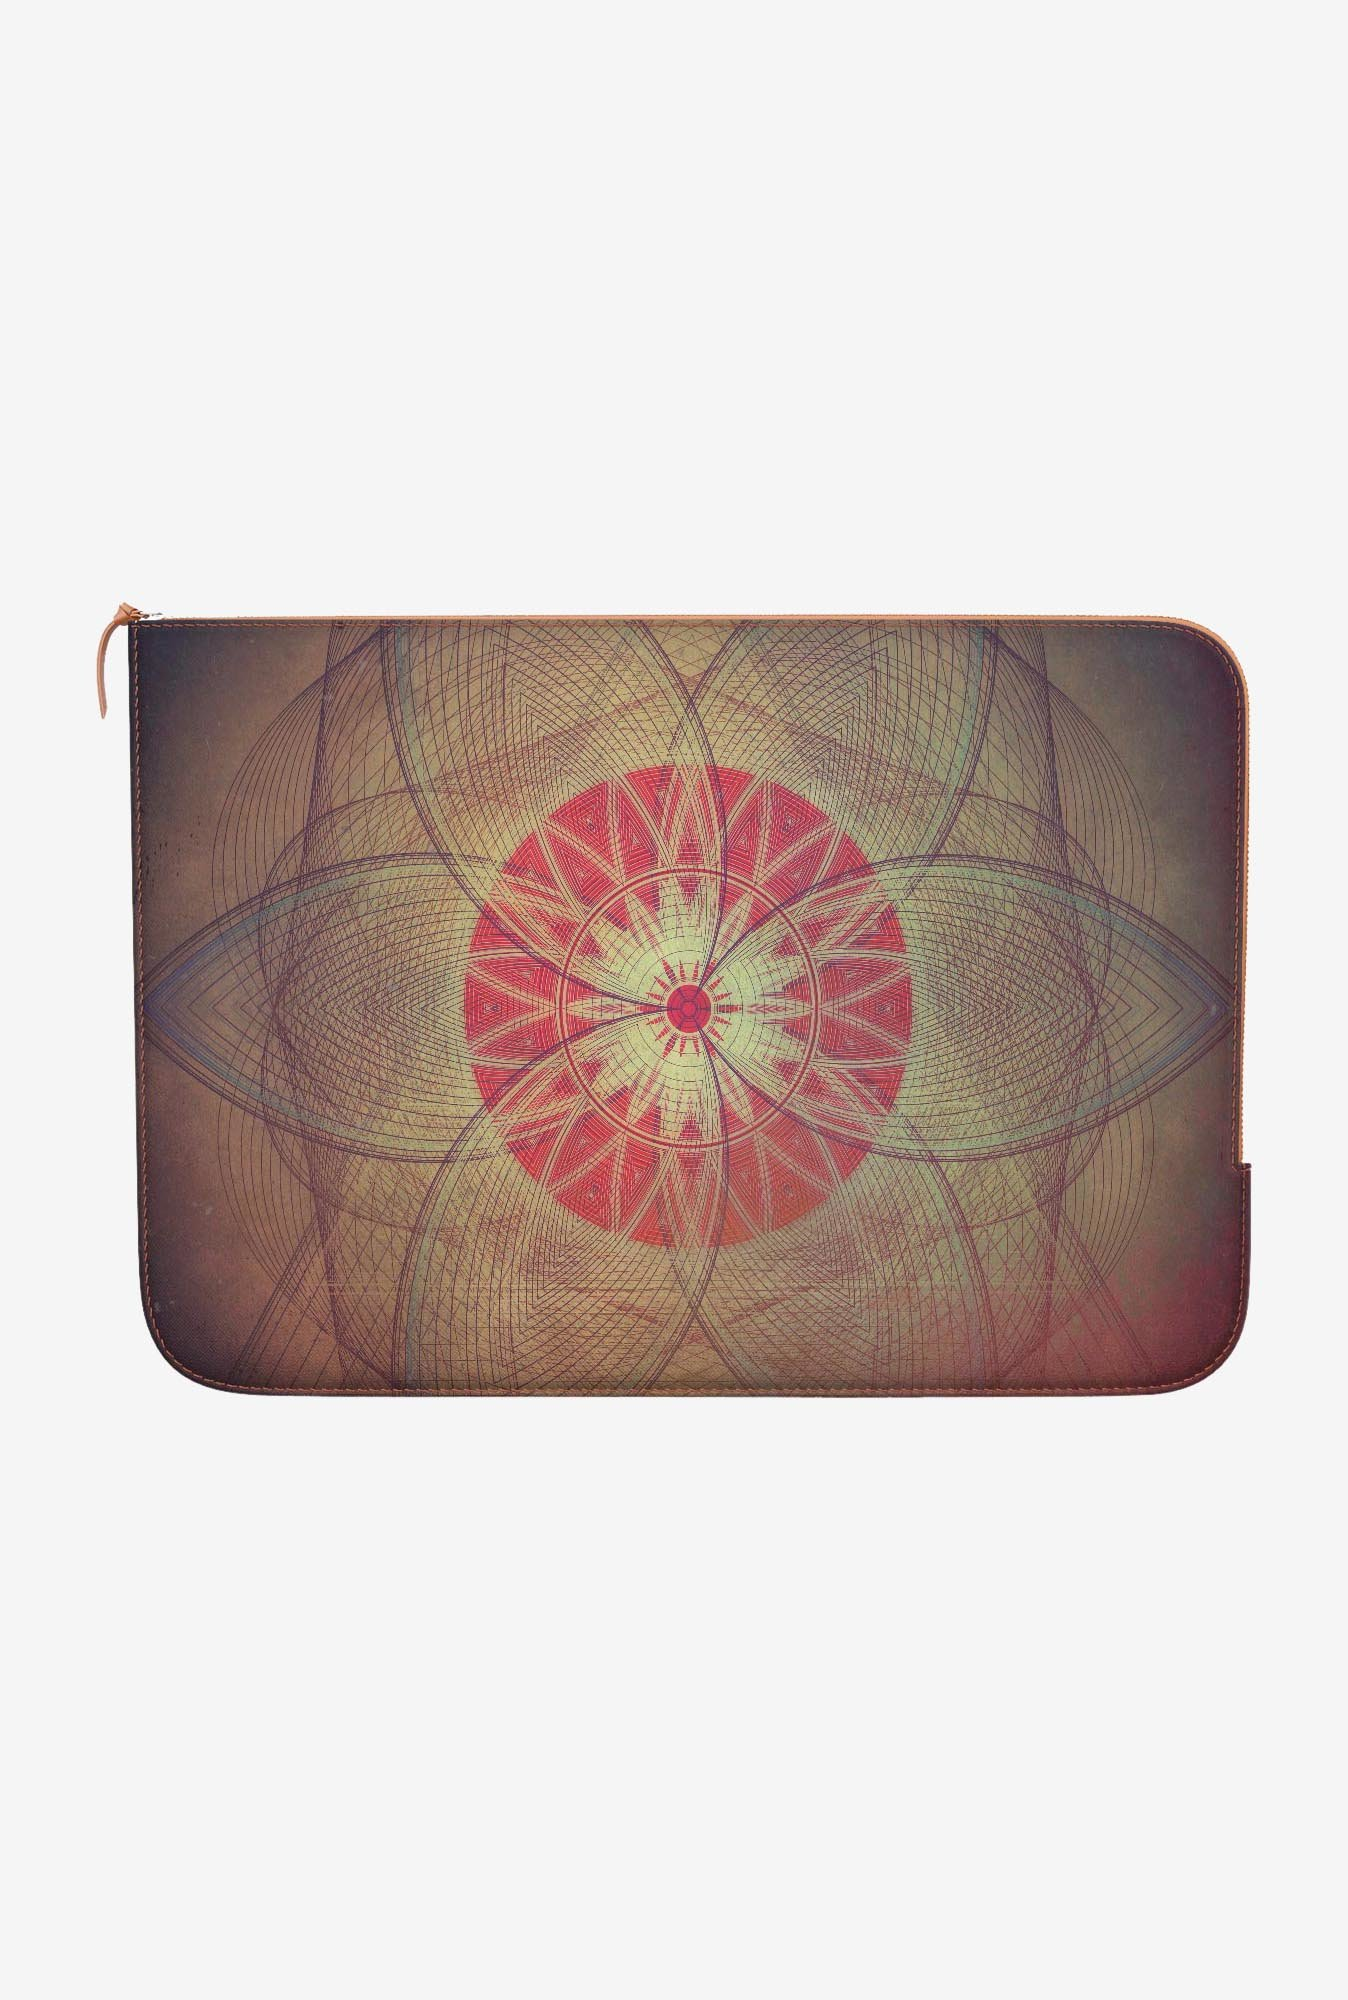 "DailyObjects Flyrym Okkuly Macbook Air 11"" Zippered Sleeve"